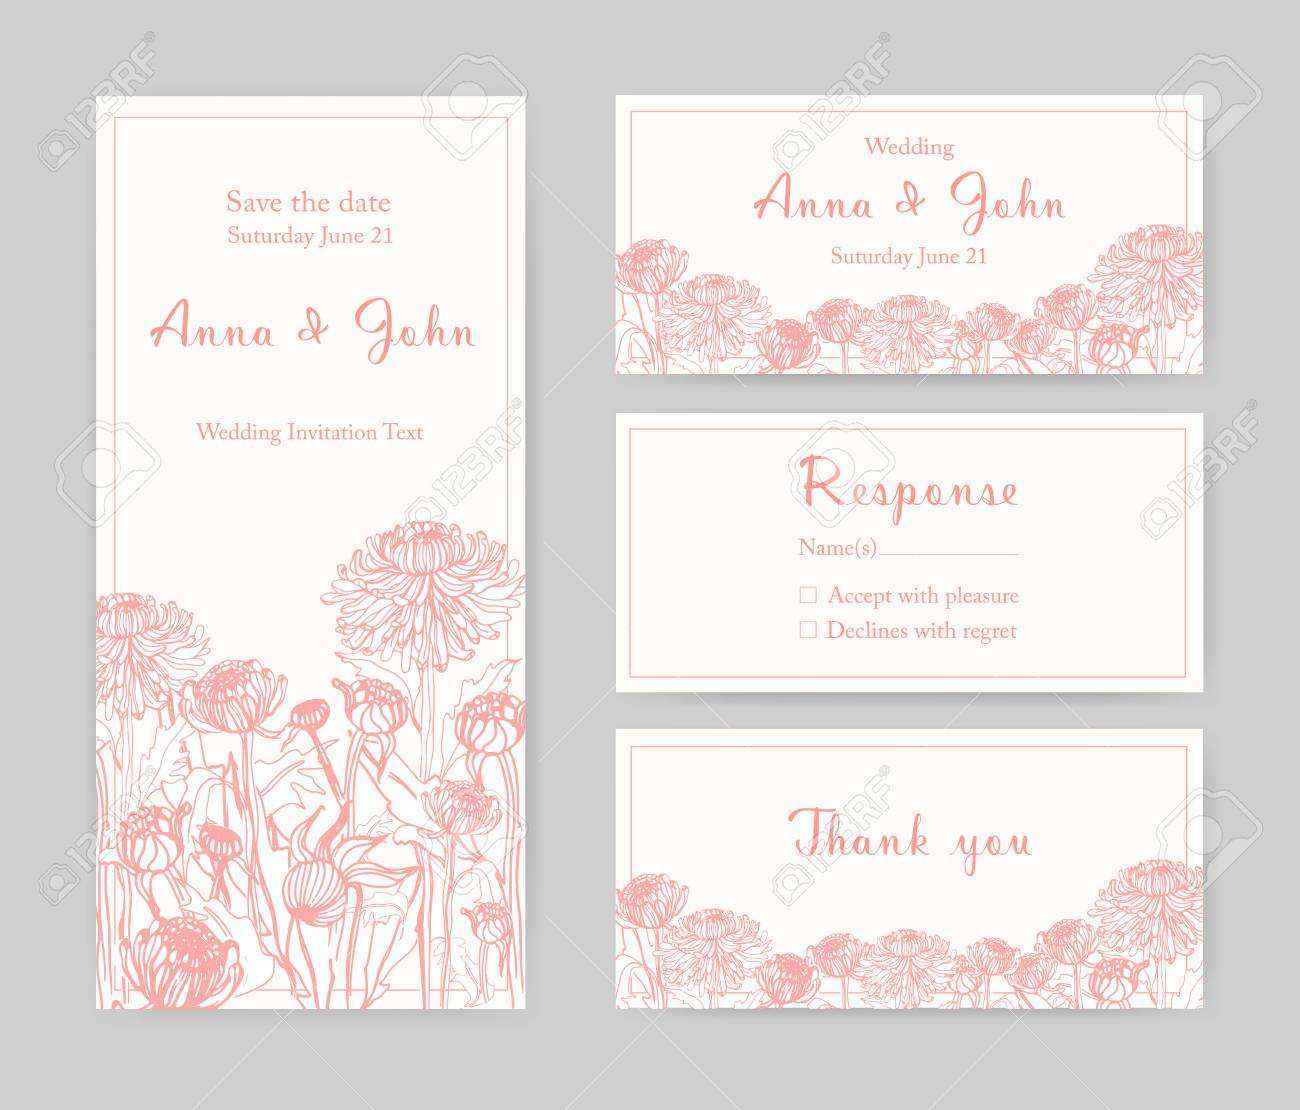 17 Report Japanese Wedding Invitation Template Now for Japanese Wedding Invitation Template